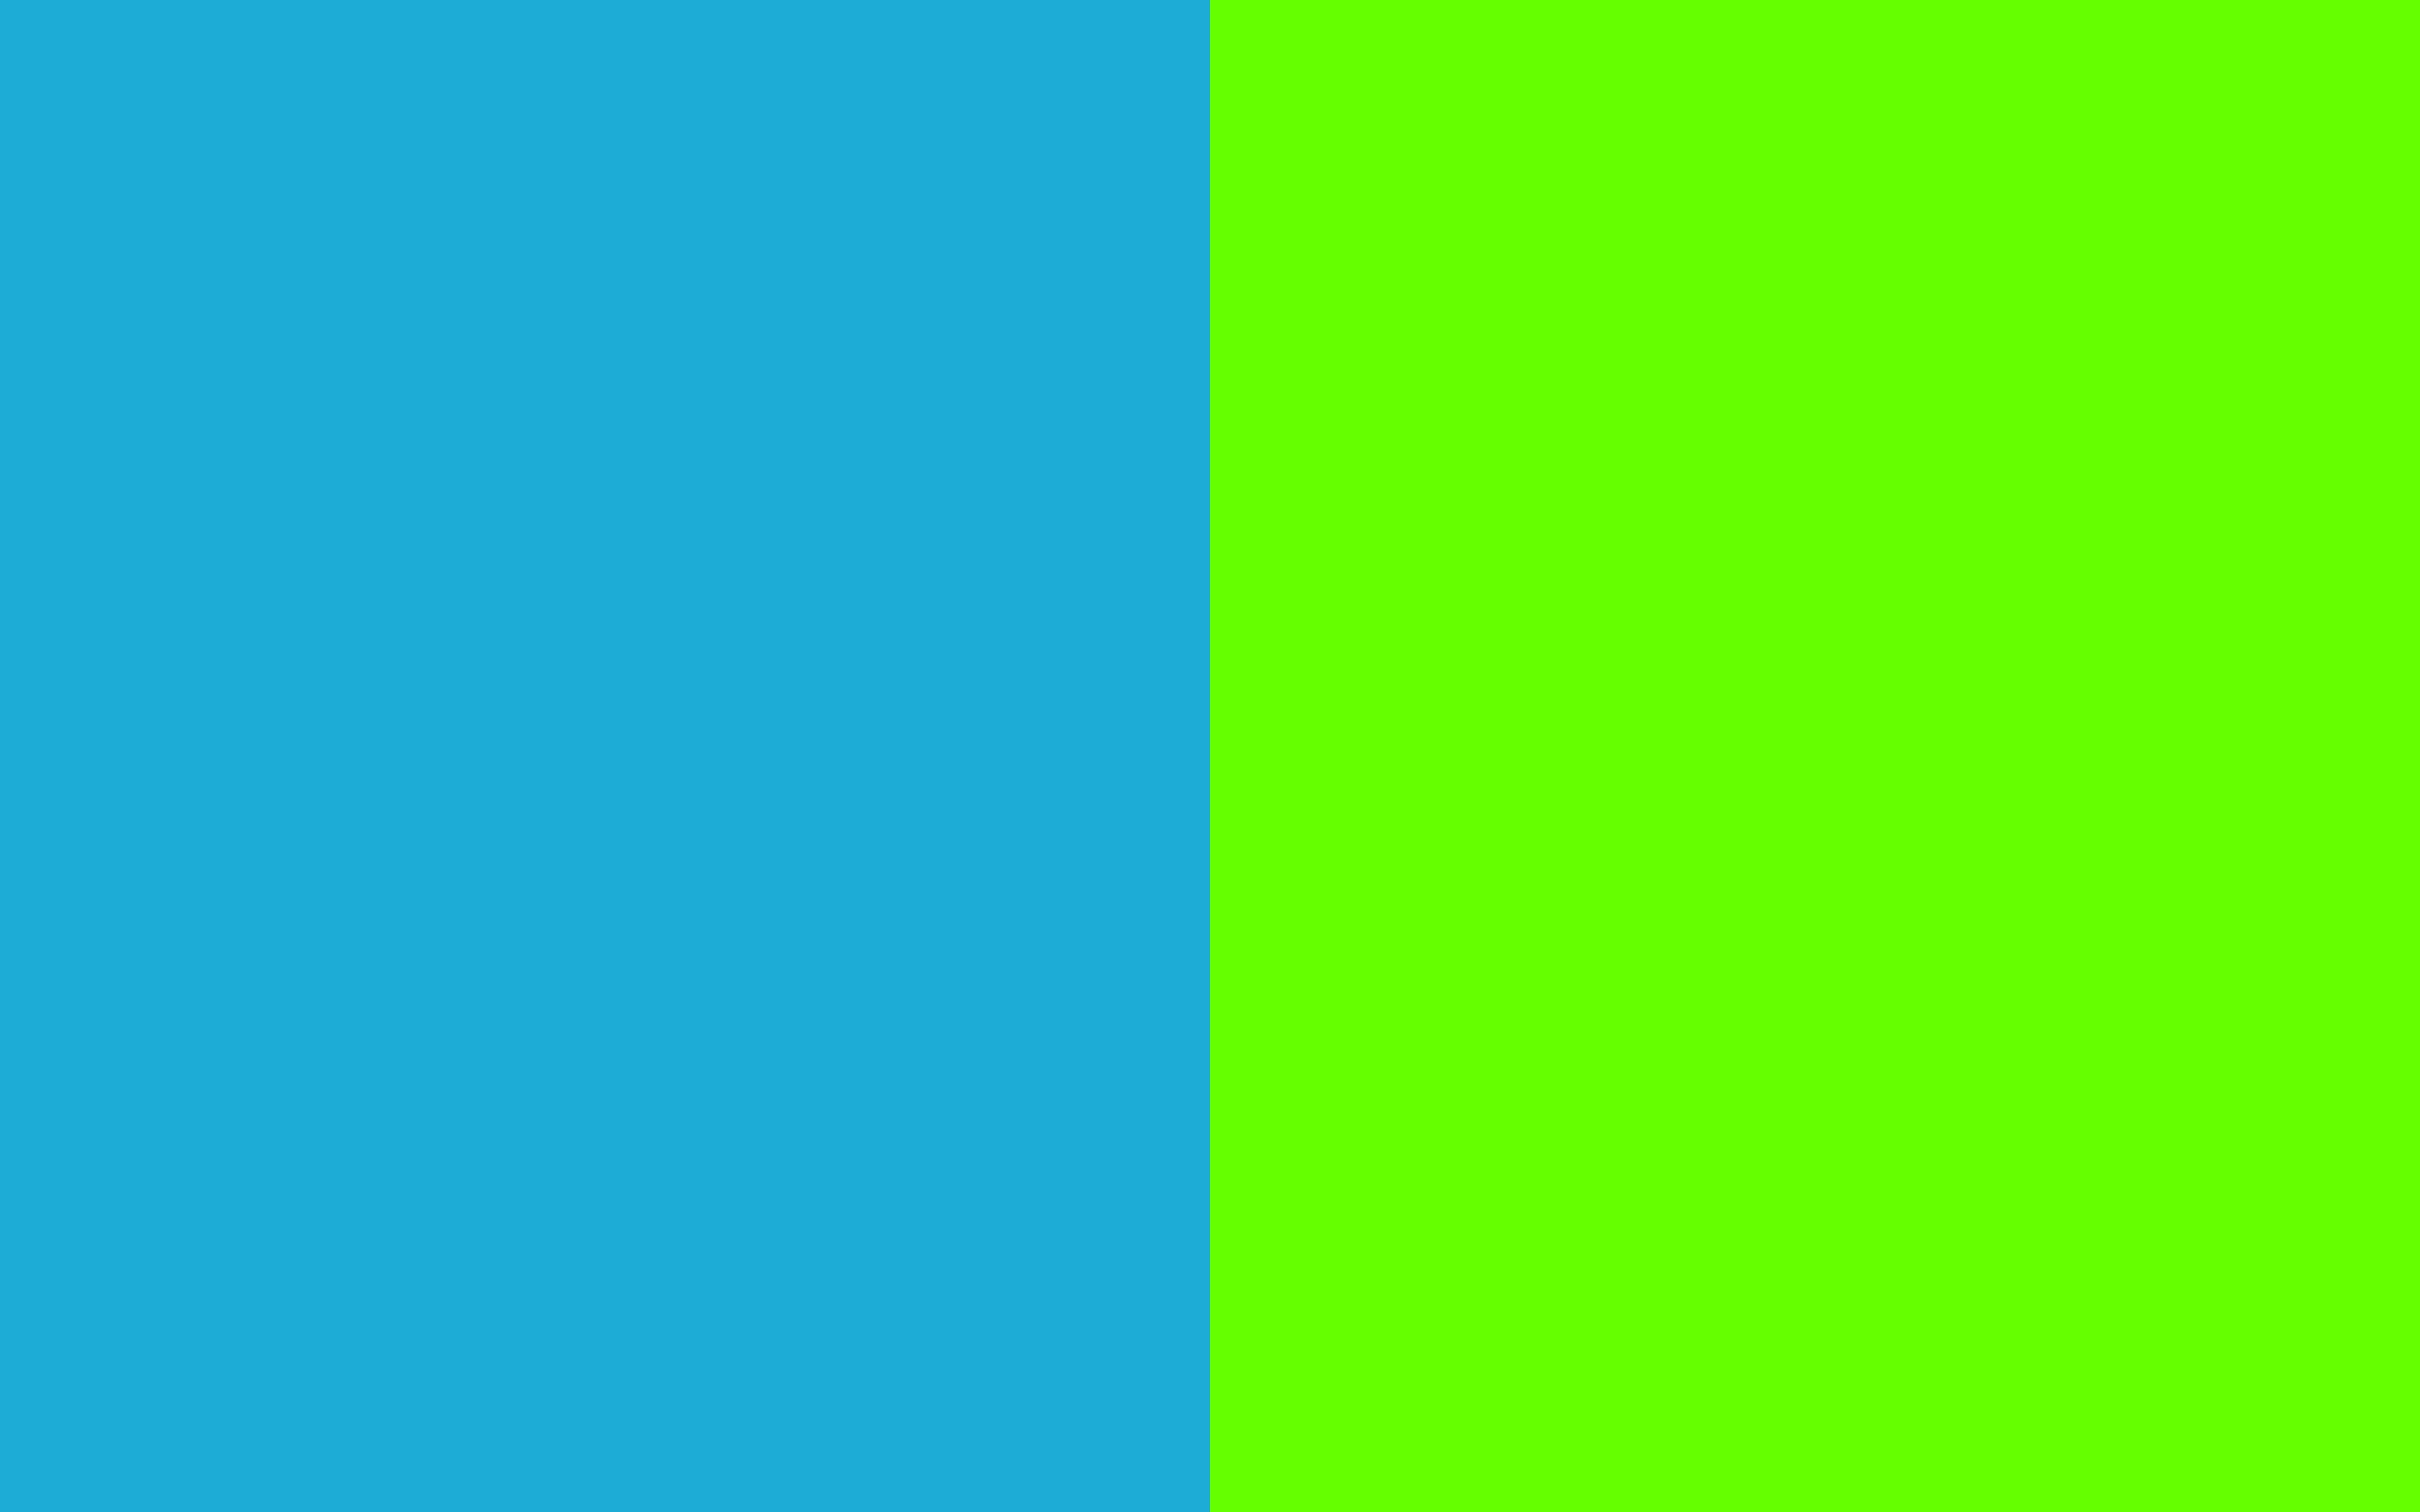 solid bright green background - photo #32